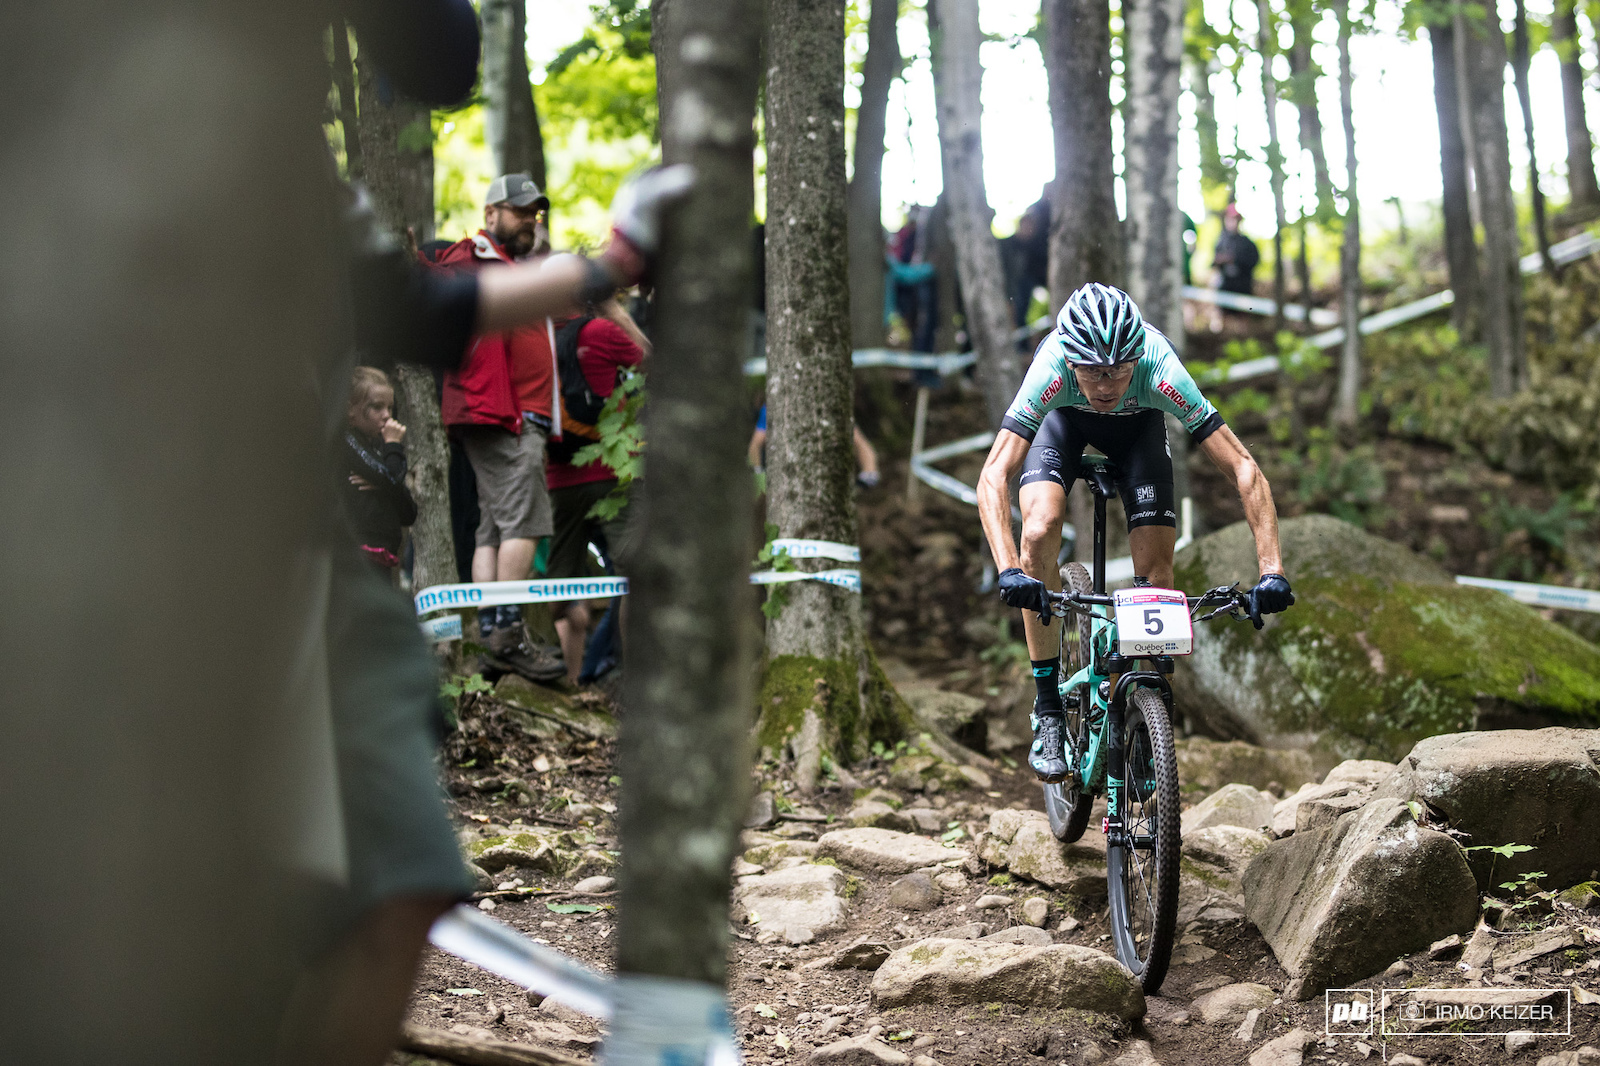 Stephane Tempier is in the form of his life. Although Schurter remained out of reach Tempier took second.